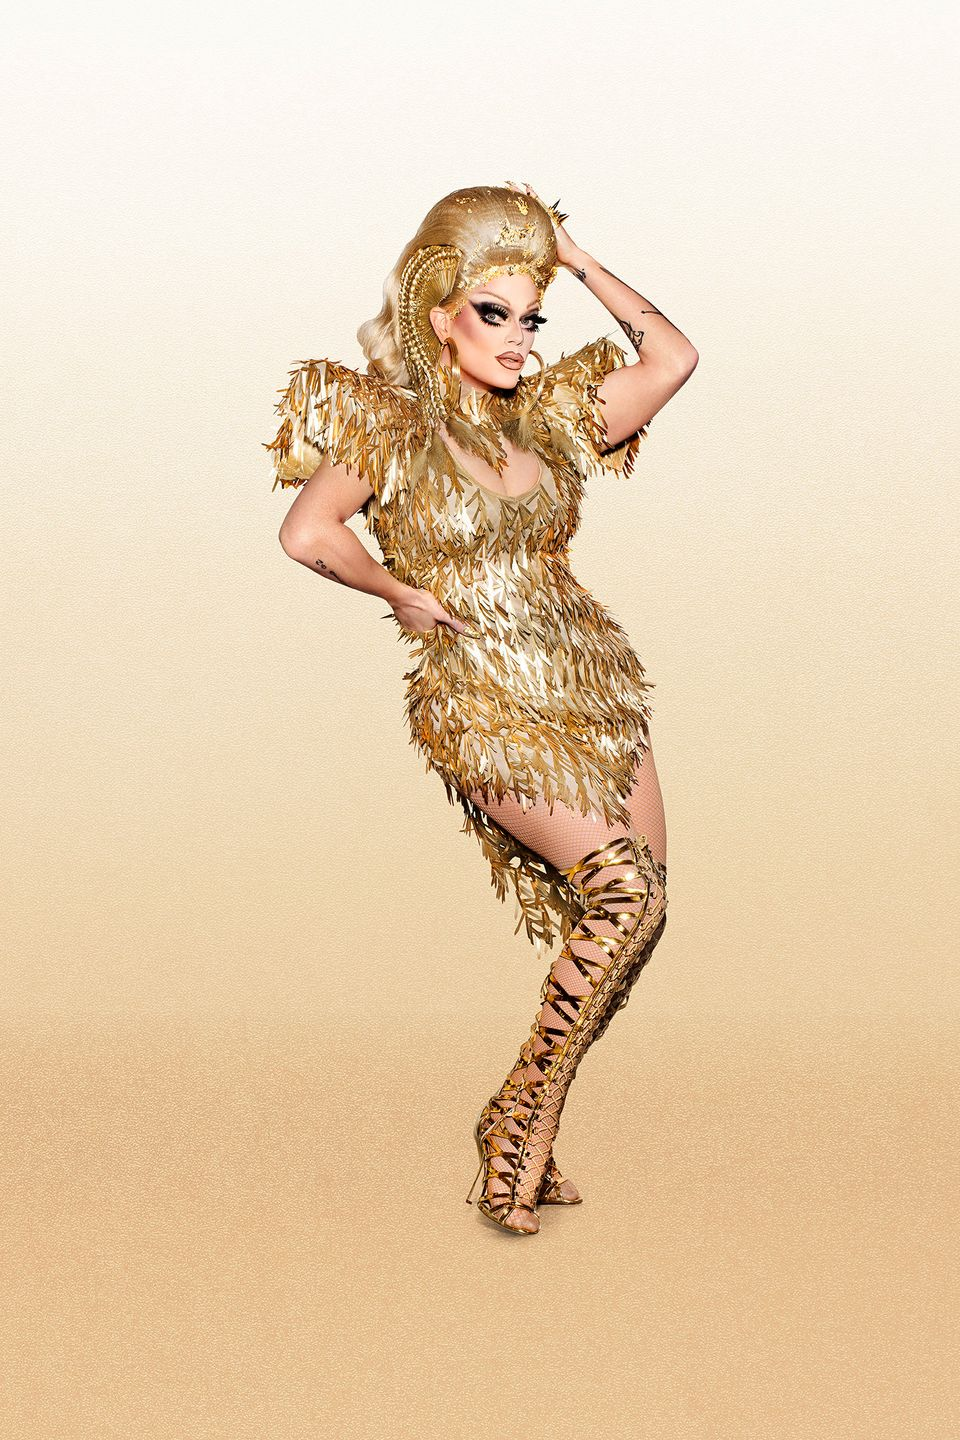 Location: Los Angeles, California<br><br>Twitter: @morganmcmichael, Instagram: @morganmcmichaels<br><br>Morgan McMichaellllll